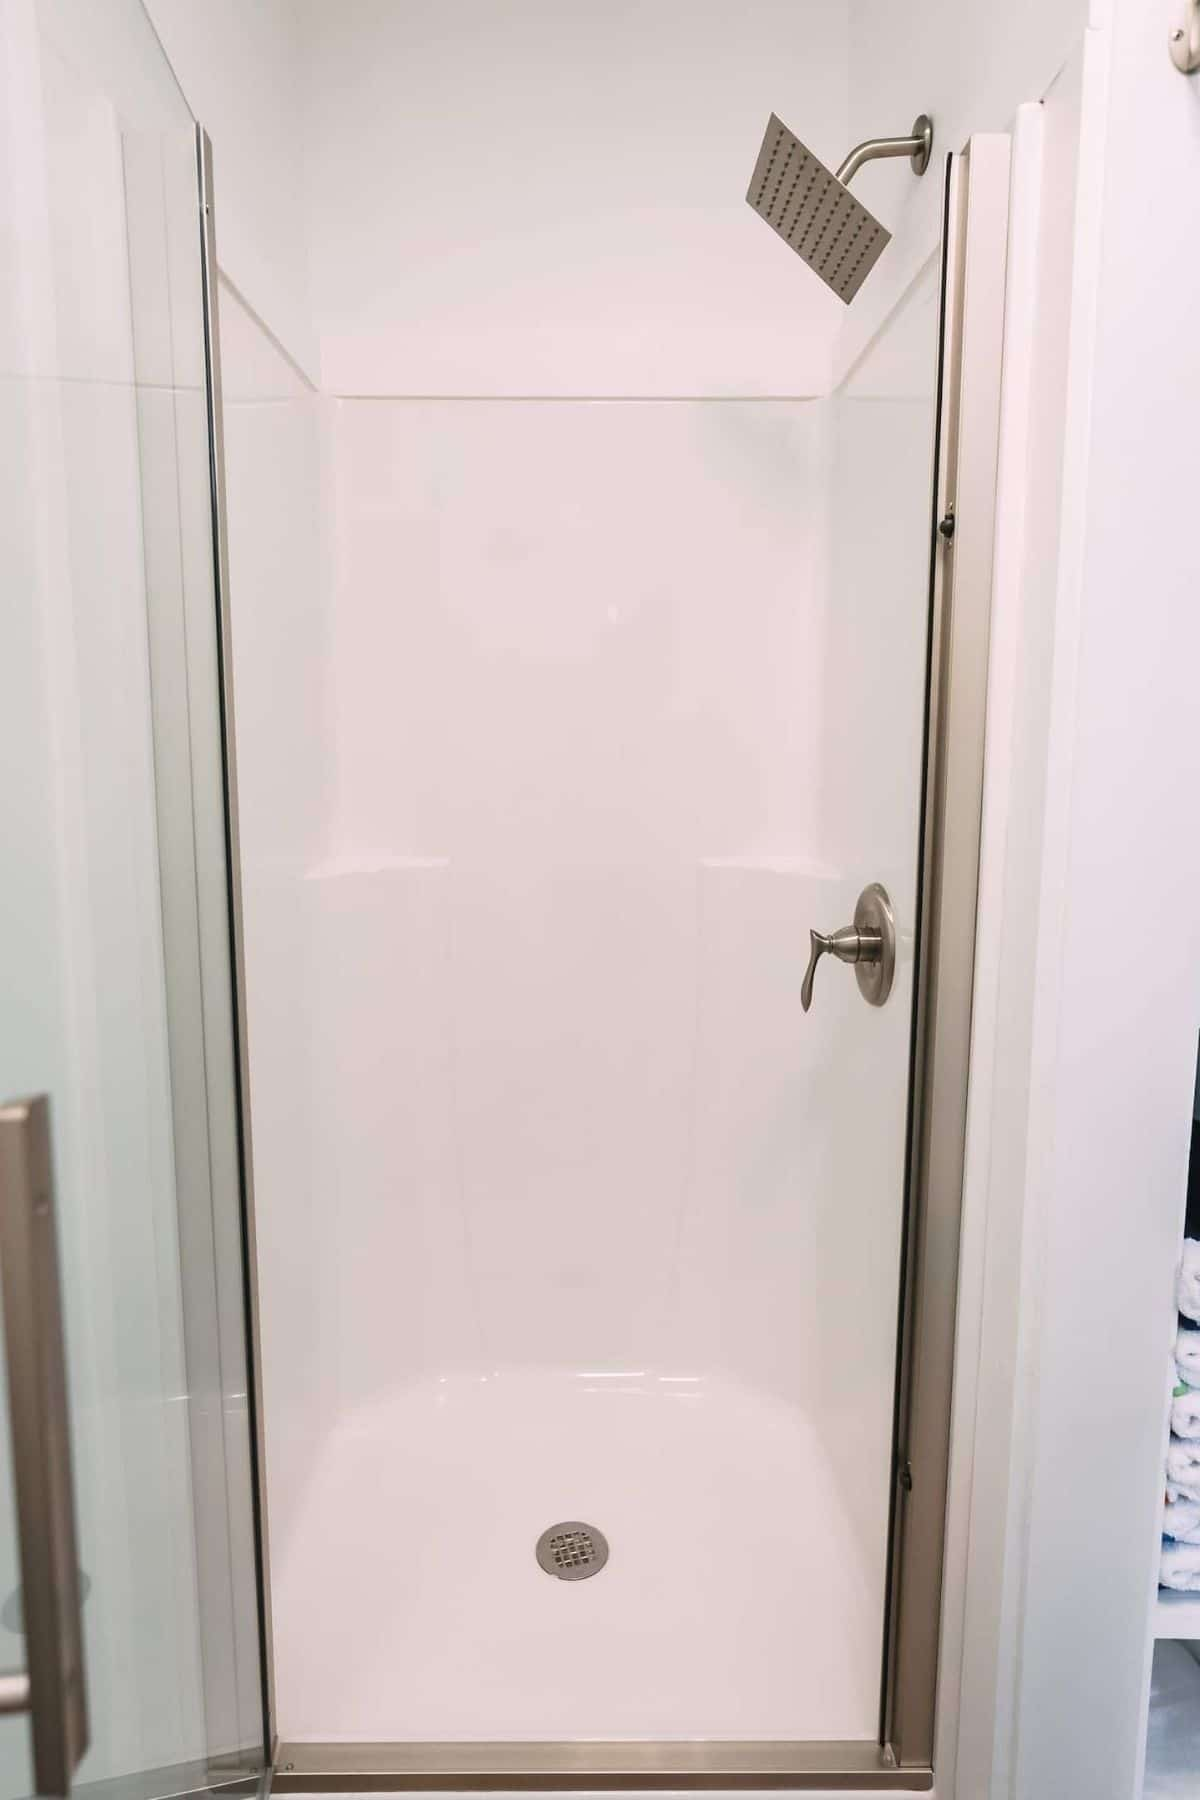 Small white shower stall with rainwater shower head